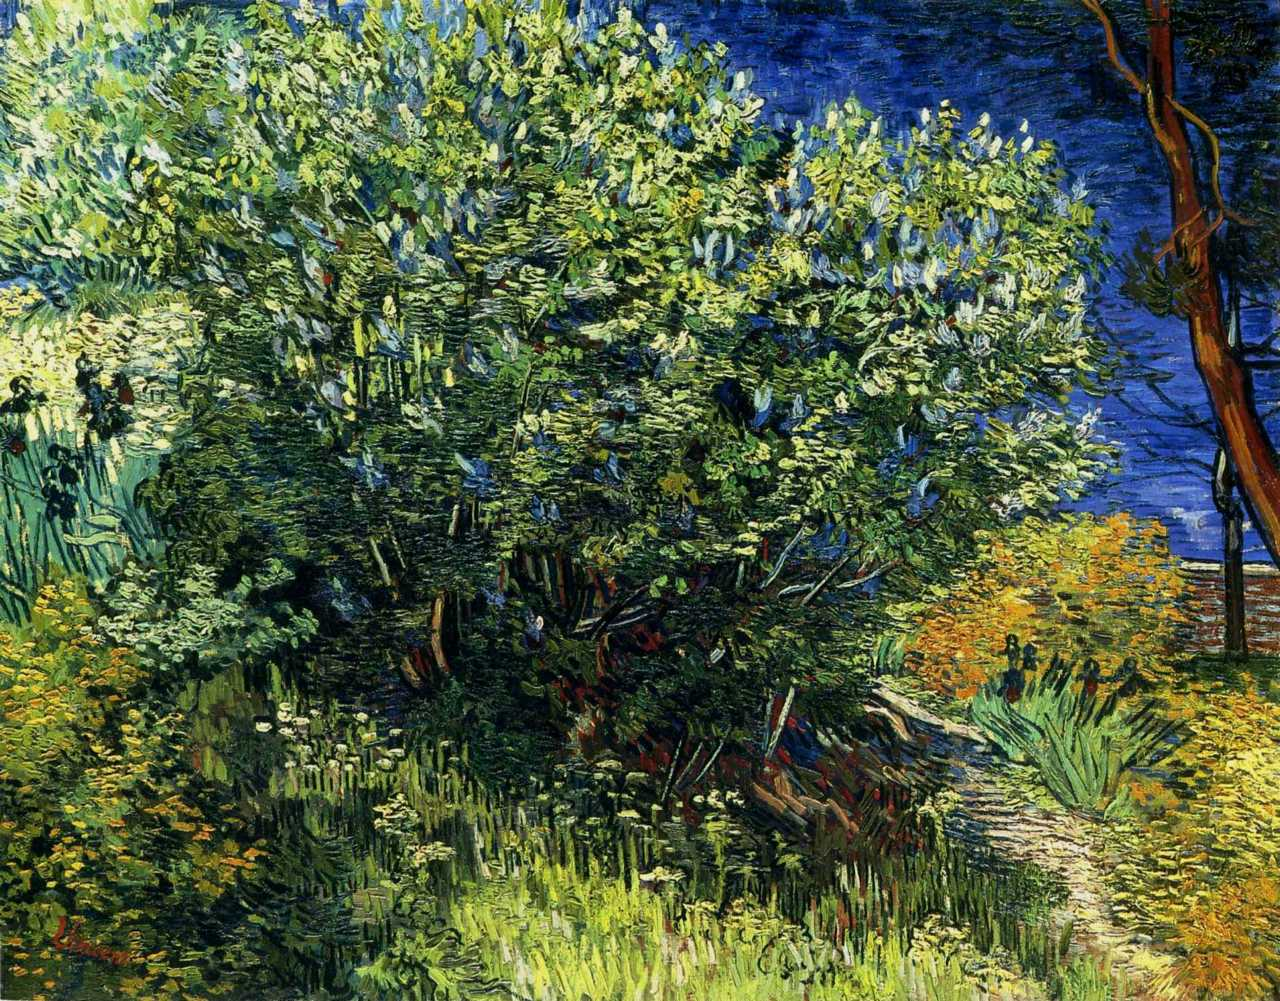 Van Gogh, Lilac Bush Oil, 1889